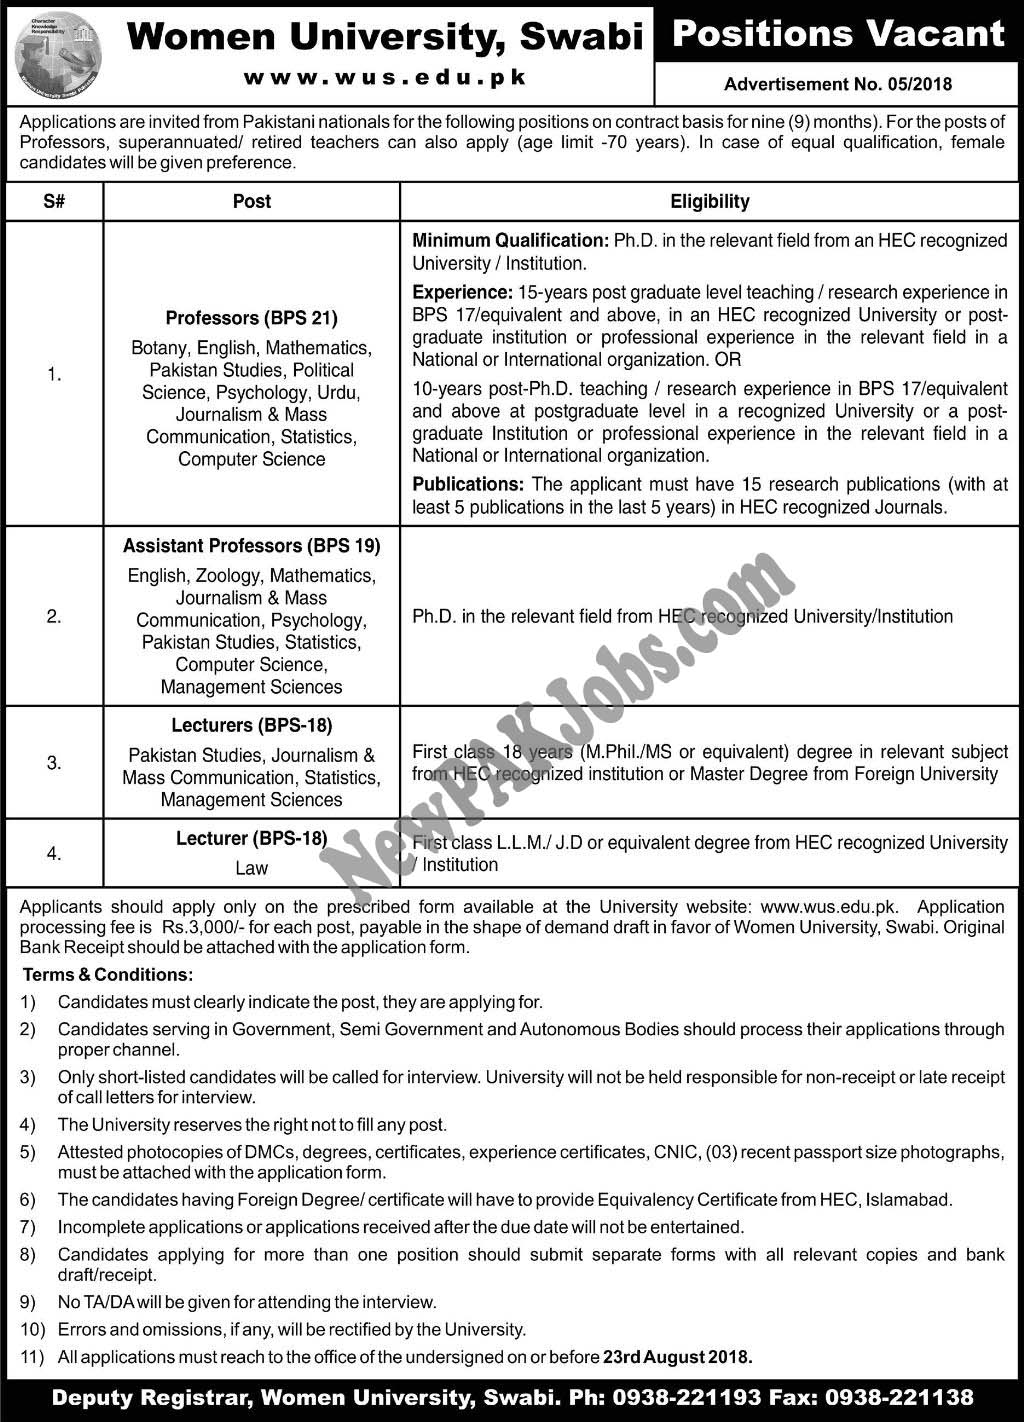 Women University Swabi Latest Jobs 2018 www.wus.edu.pk